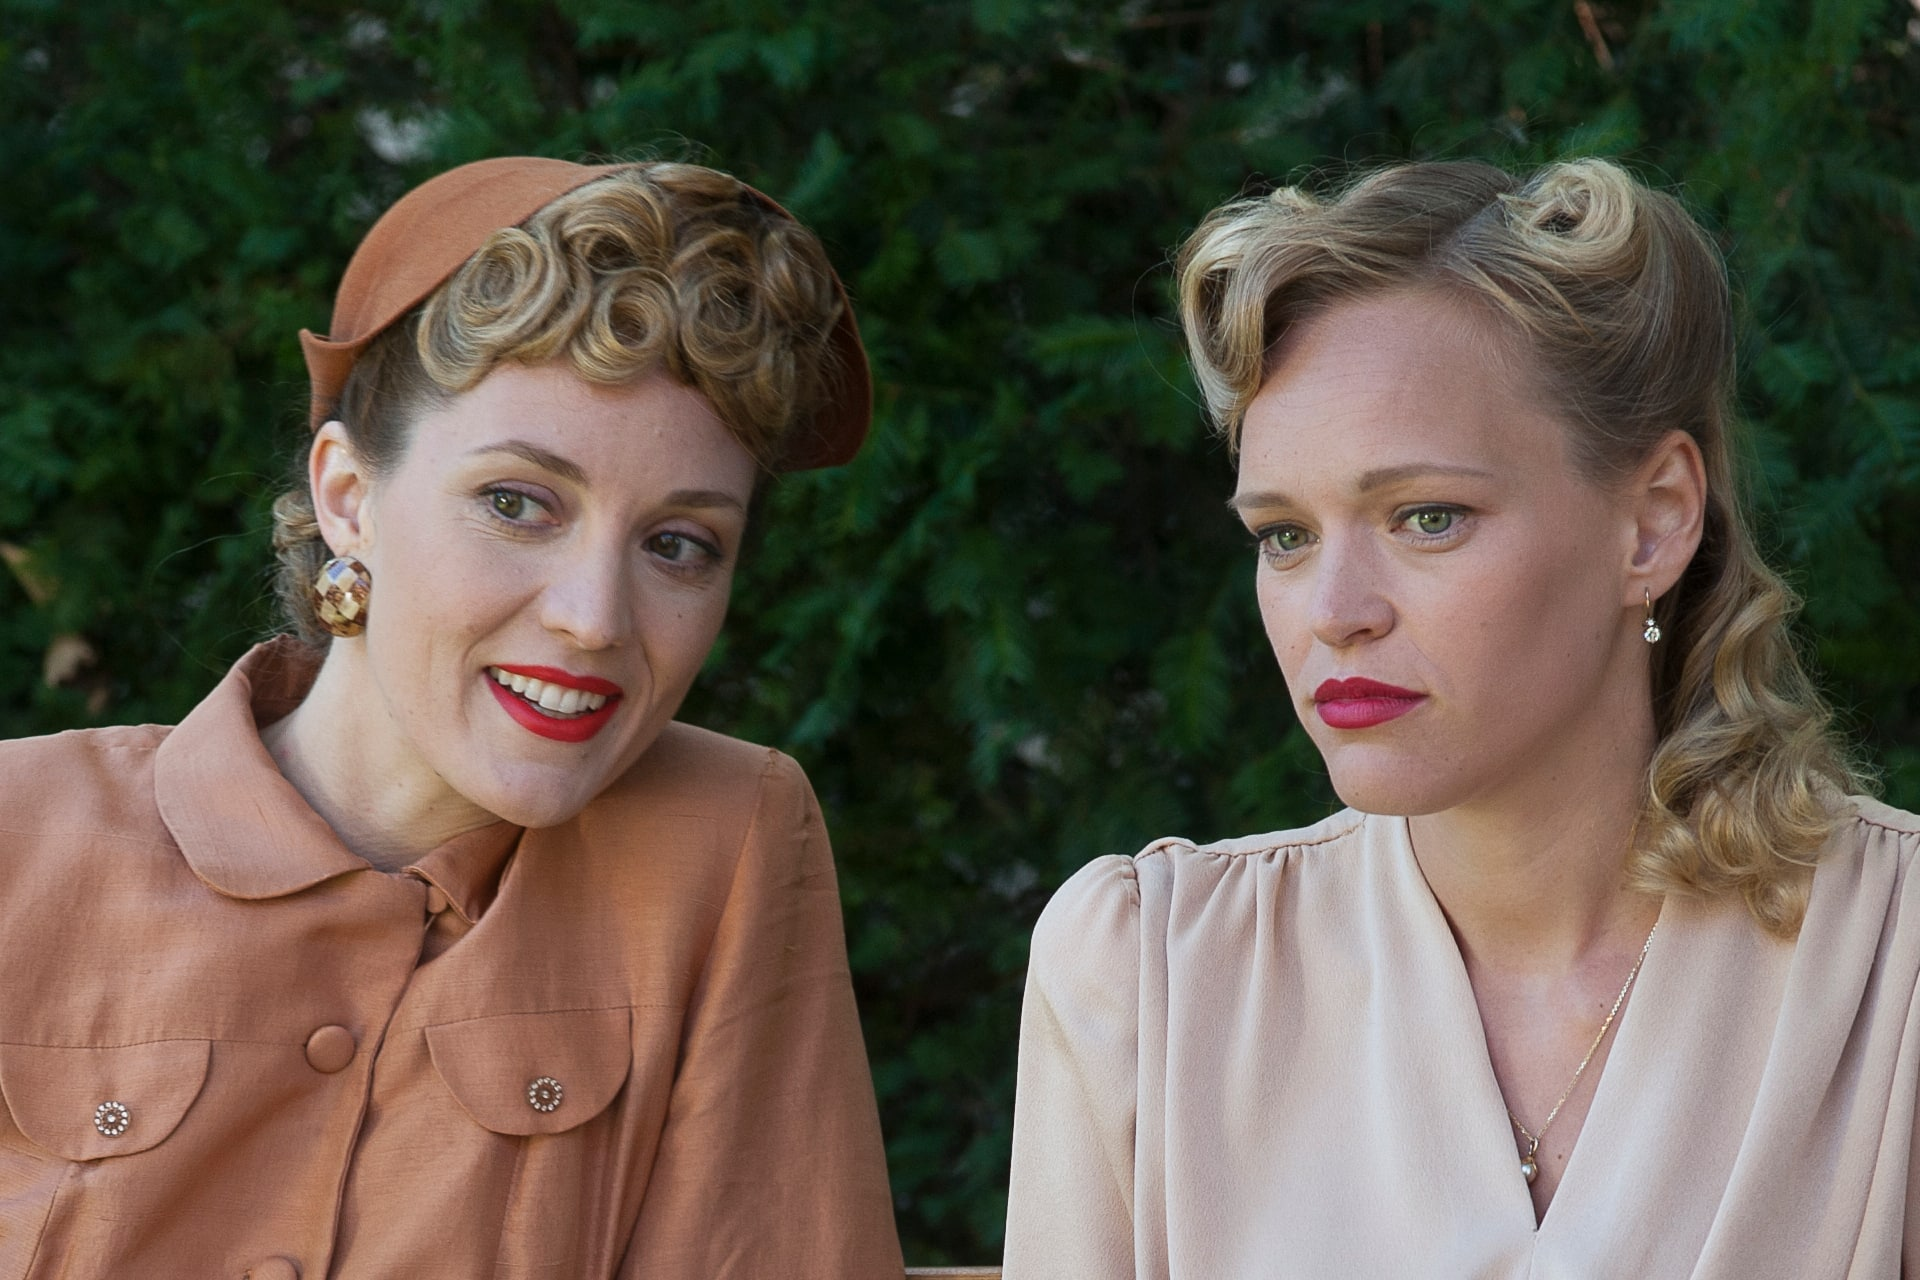 Left, Evelyne Brochu as Aurora and right, Livia Matthes as Sabine.